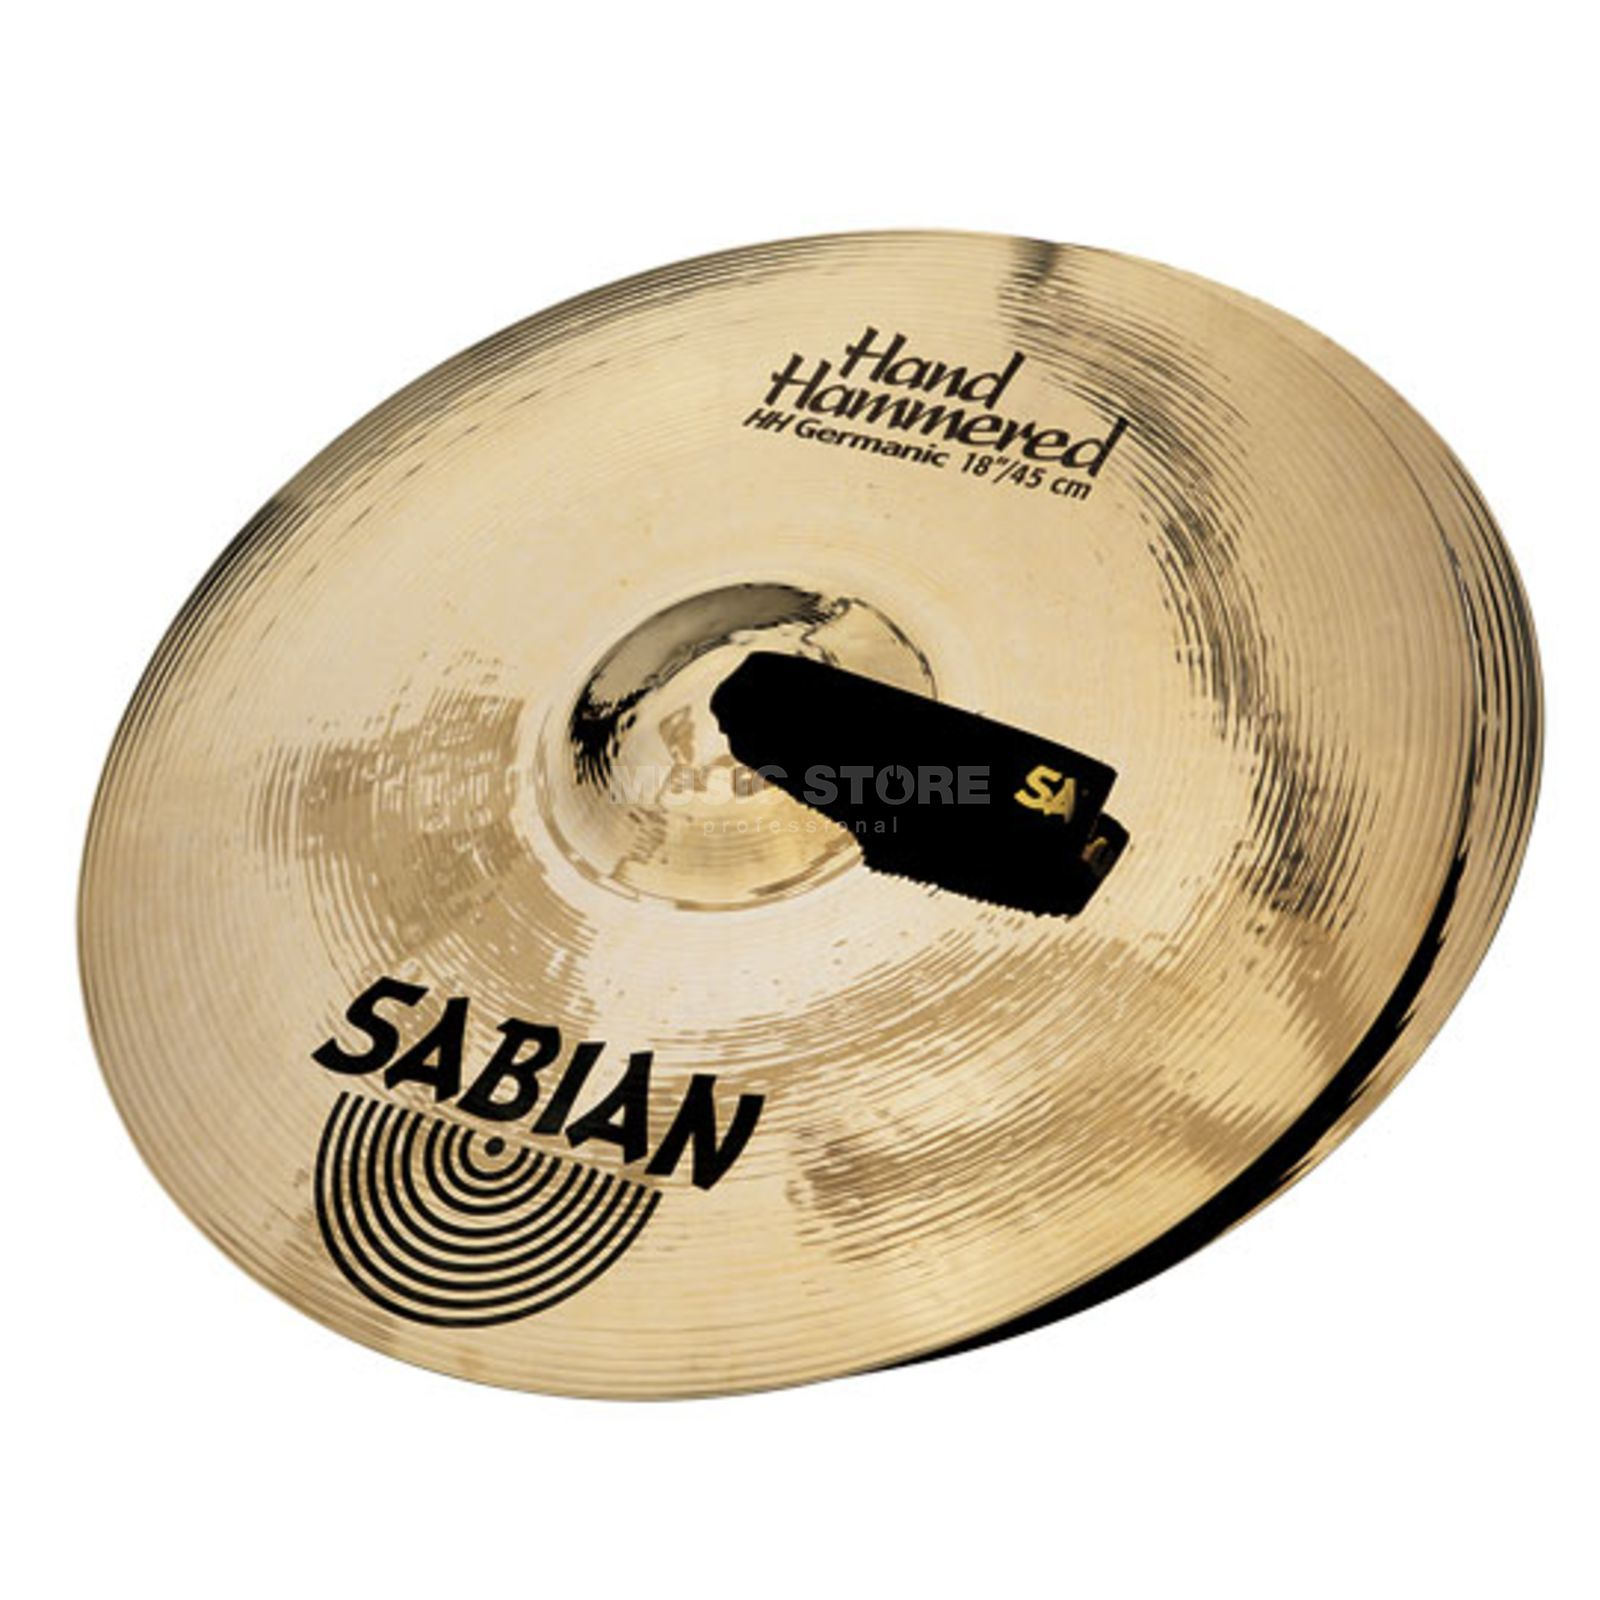 "Sabian HH Orchestra Cymbals 20"", Heavy, Germanic Product Image"